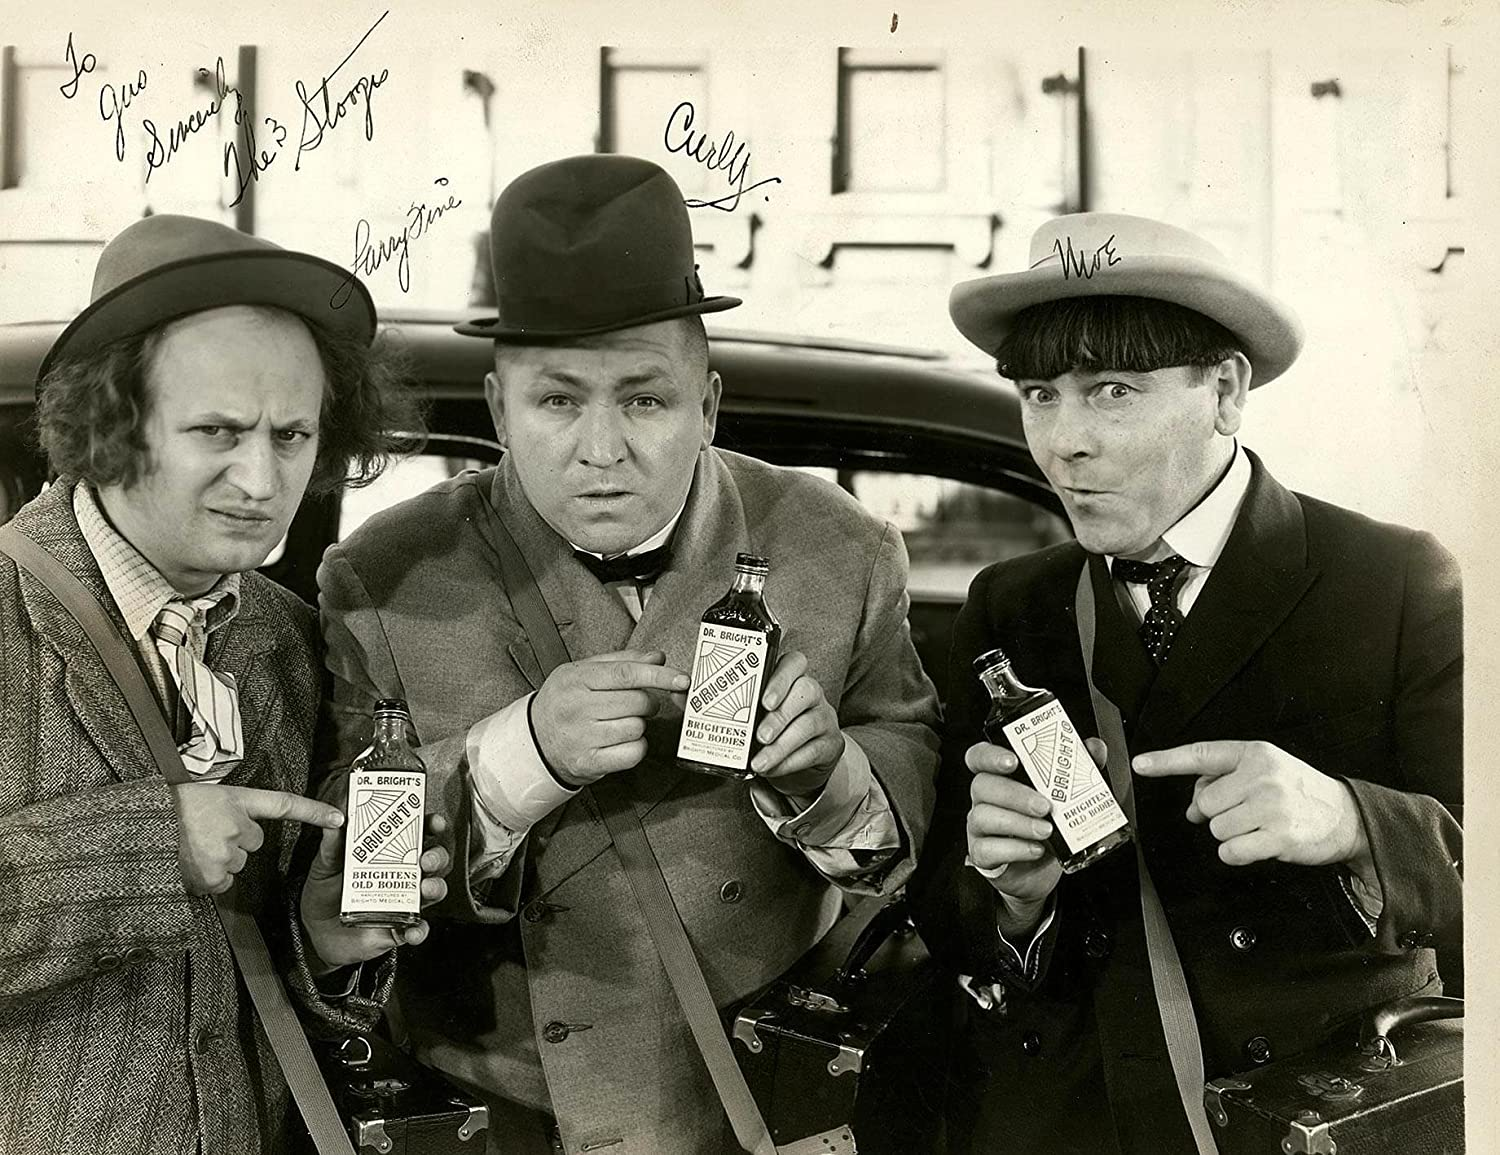 The Three Stooges 8x10 Movie Still Photo #6 - Mint Condition